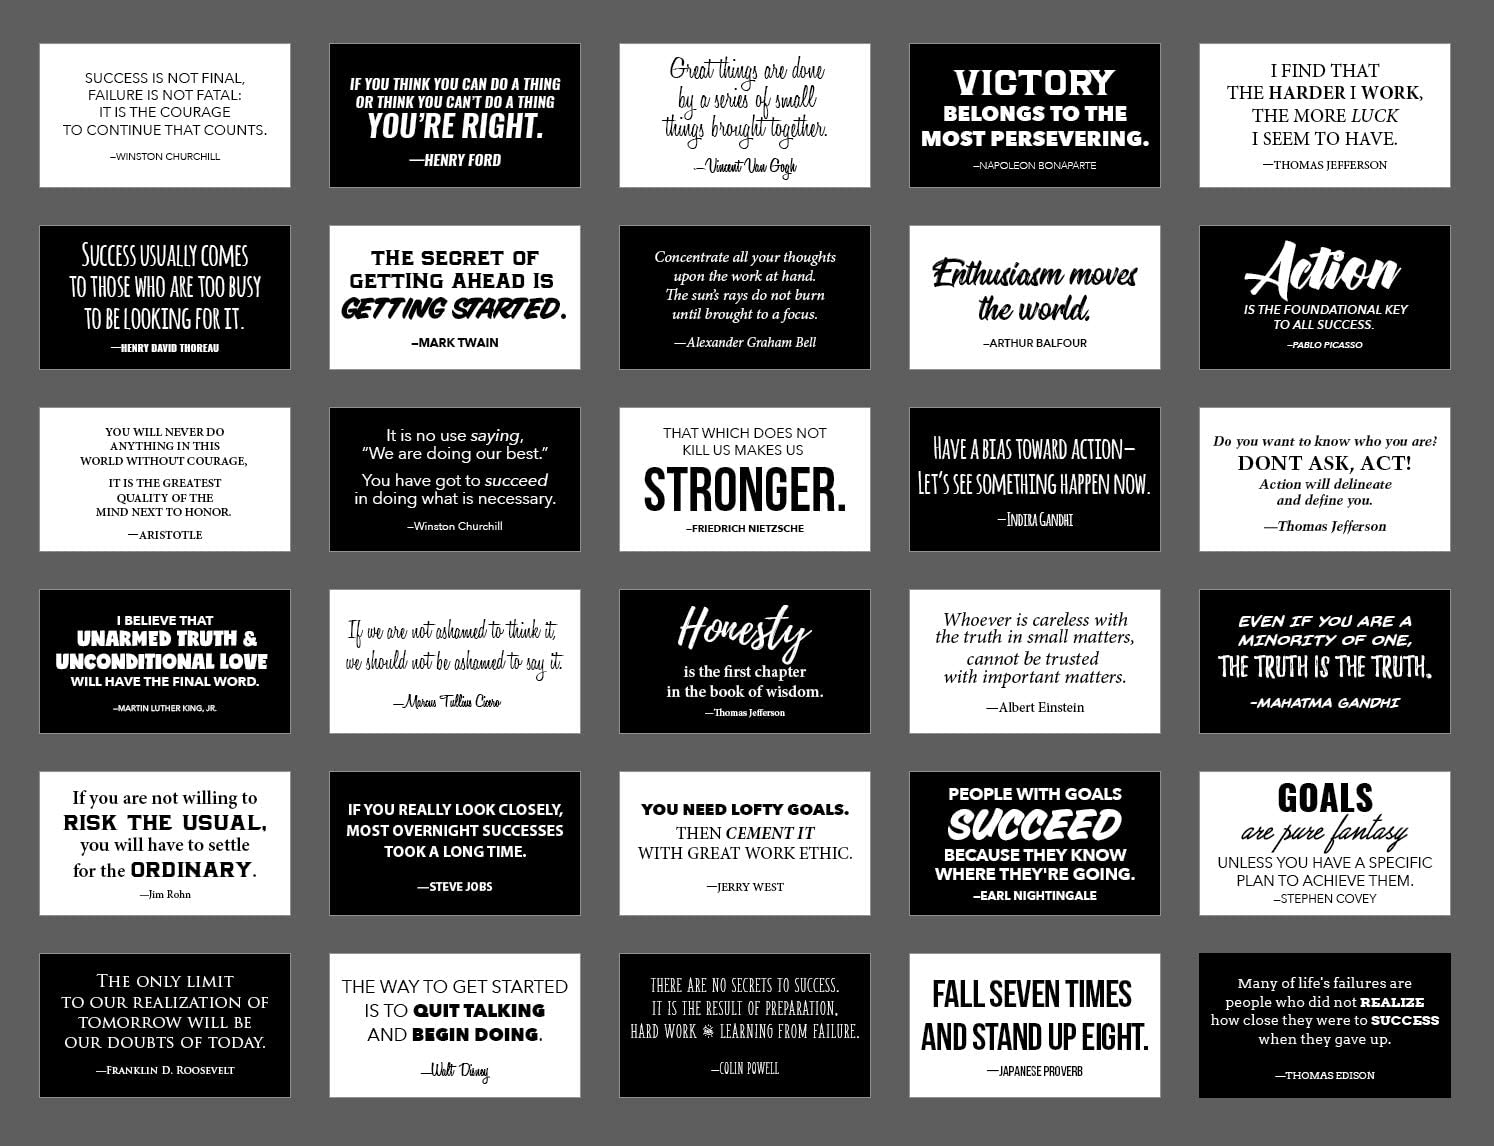 Focus and Zeal Motivational and Inspirational Success Quote Cards in Black and White by Historically Famous Leaders and Innovators - Business Card Size, 30 pcs